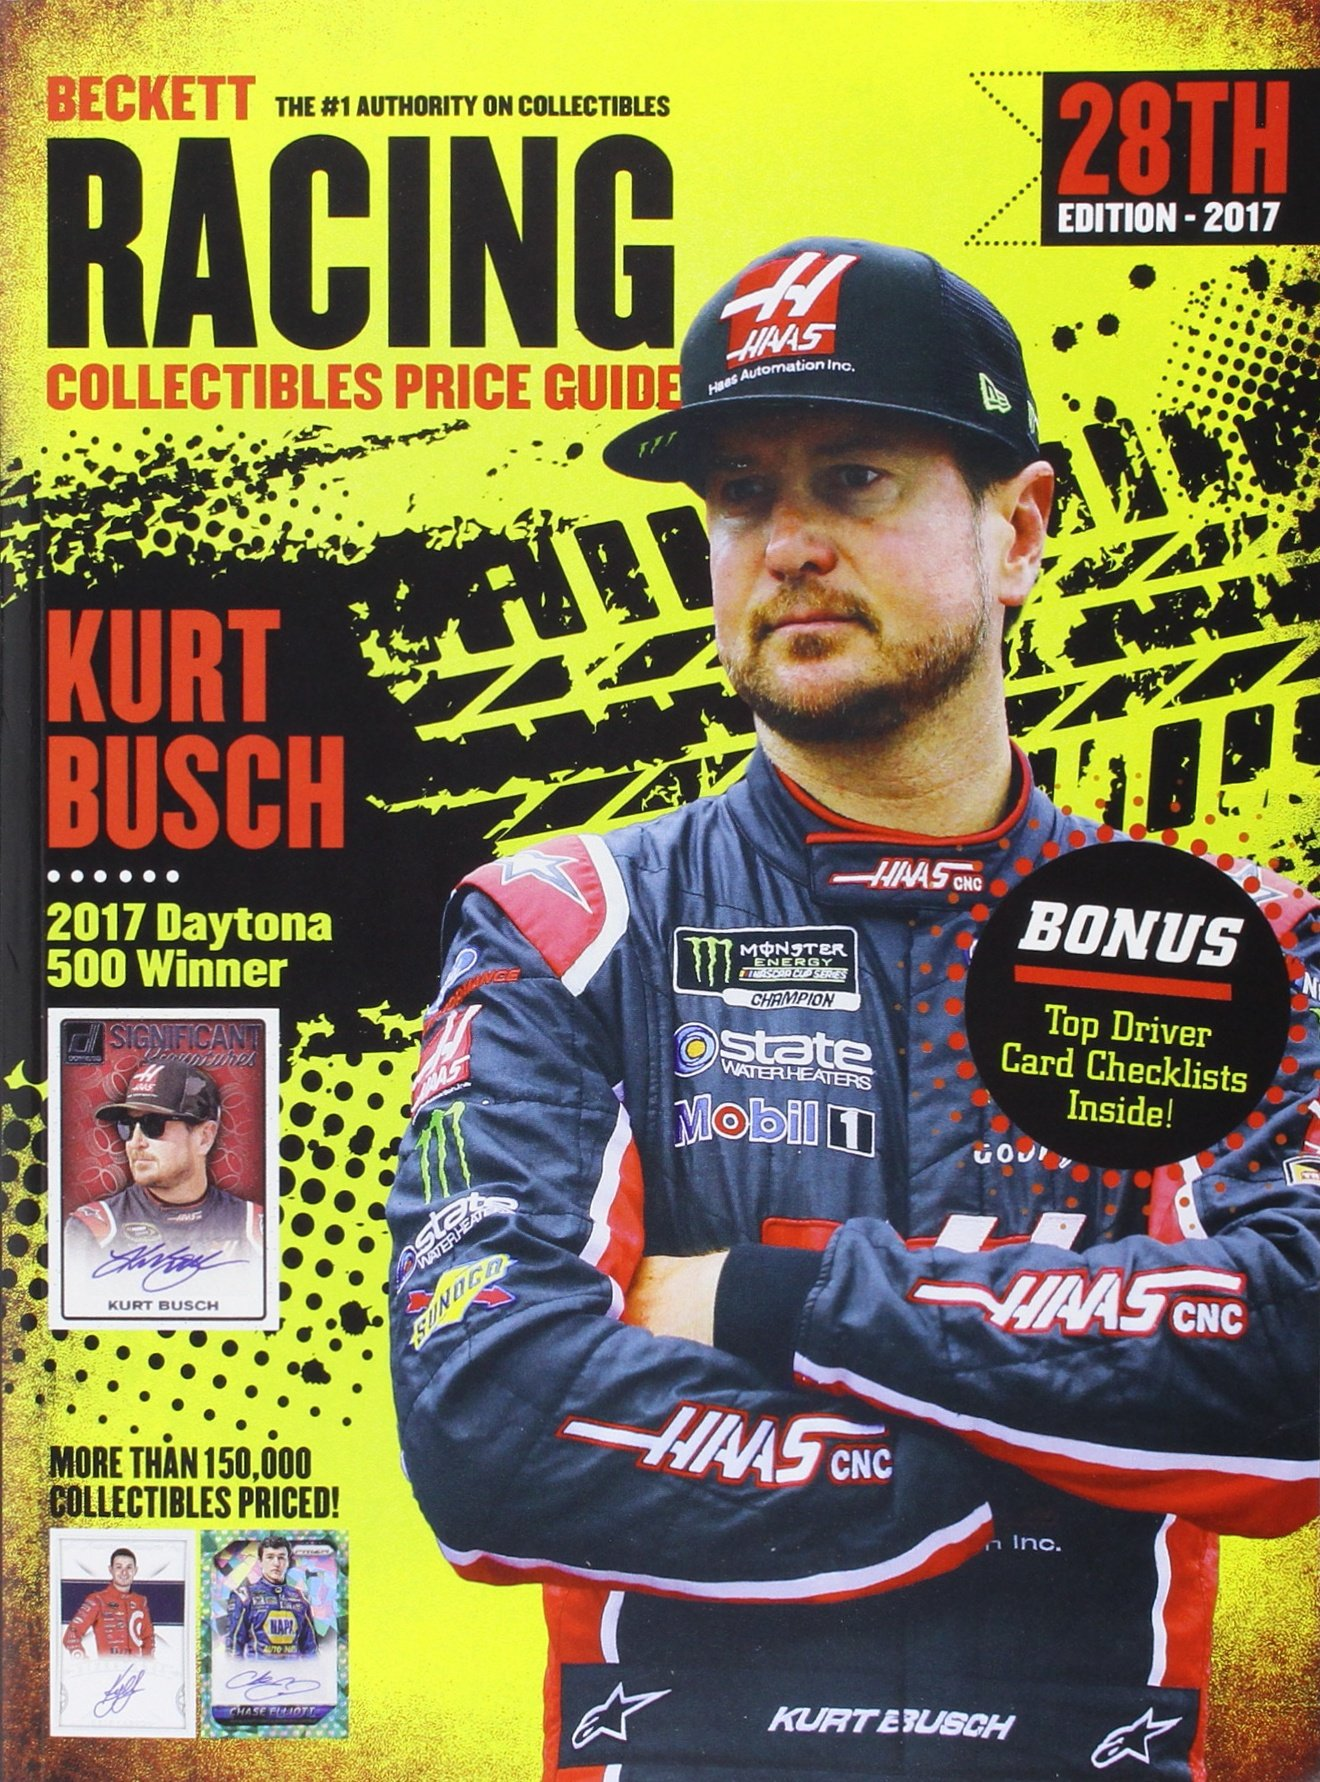 Beckett Racing Collectibles Price Guide 28th Edition -2017 (Beckett Racing Price Guide) PDF